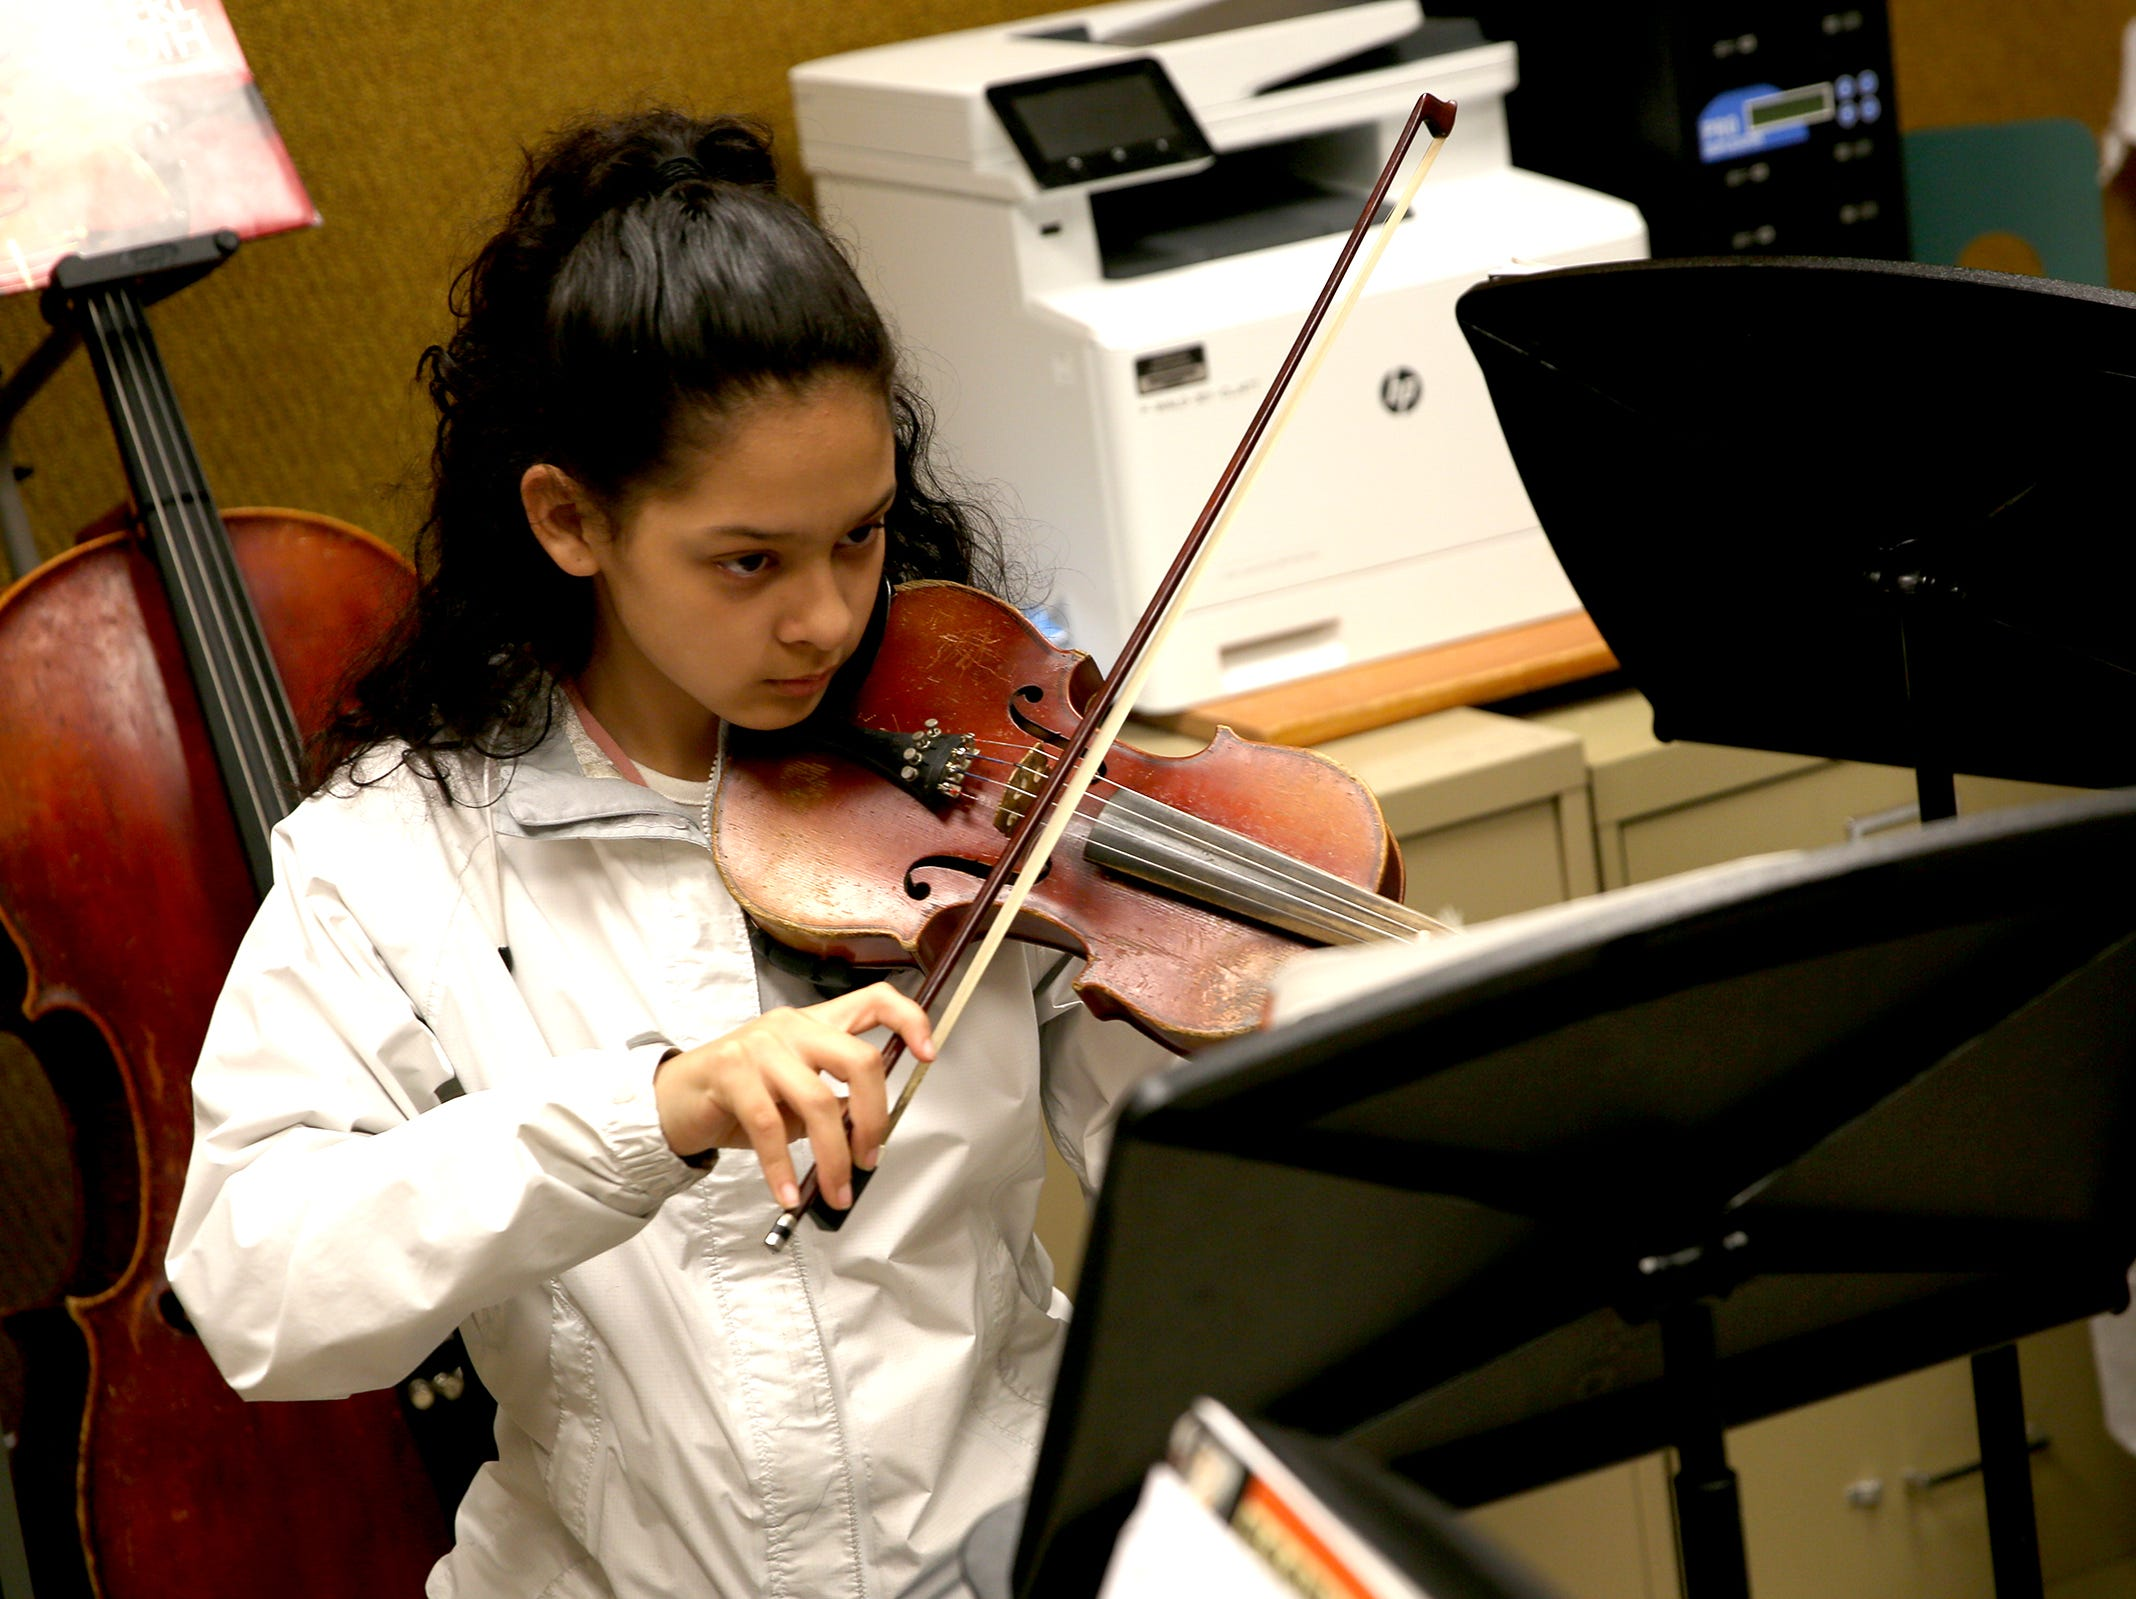 Sixth grade student, Emily Gonzalez, plays the violin during a Music Lessons Project class, which offers private or small group lessons to students in Title I schools, at Waldo Middle School on April 19, 2019.